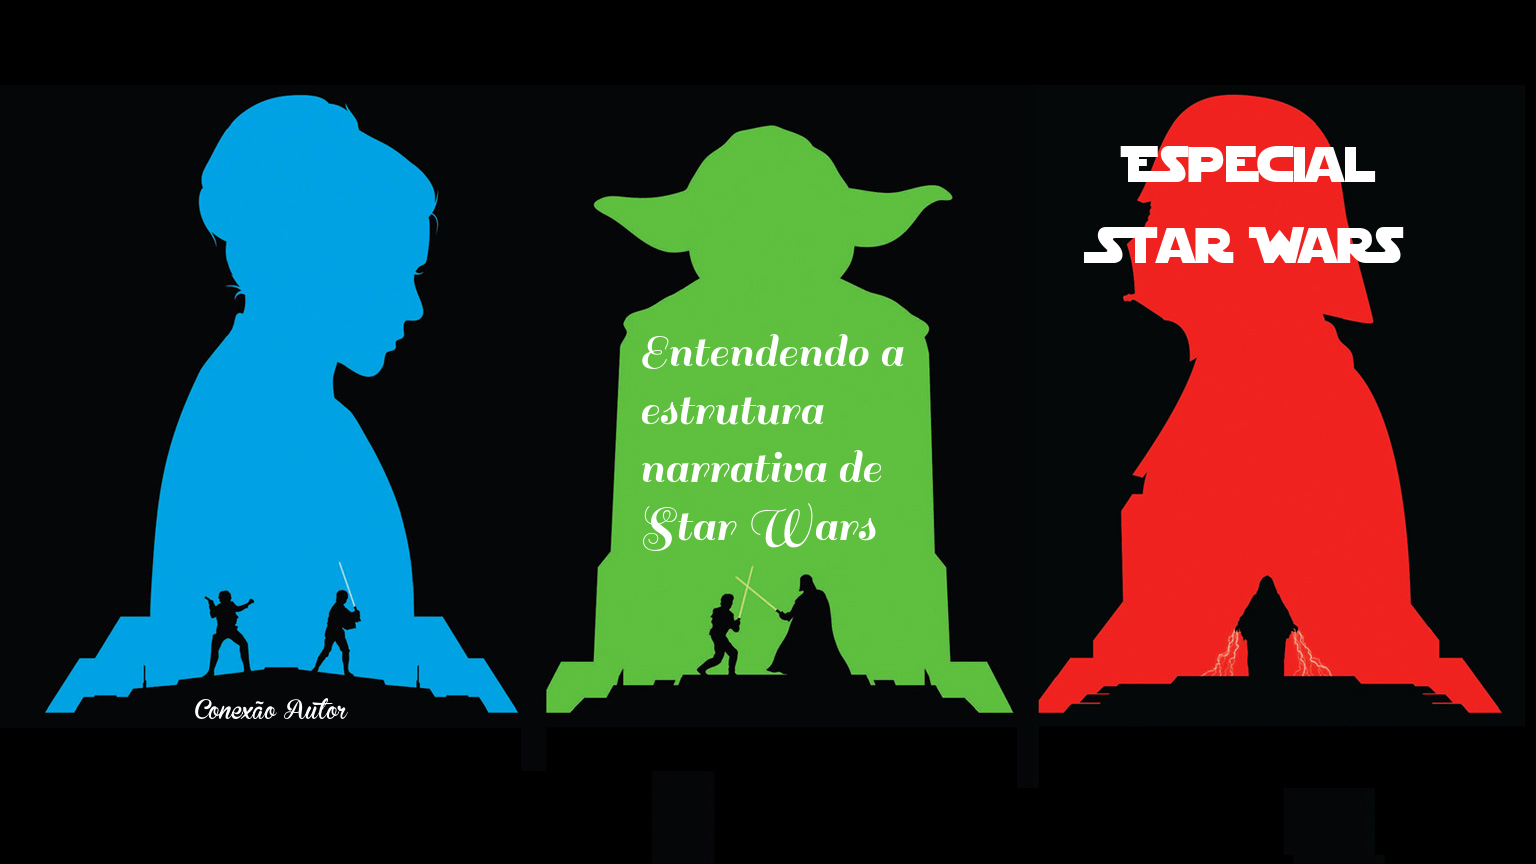 Entendendo a estrutura narrativa de Star Wars